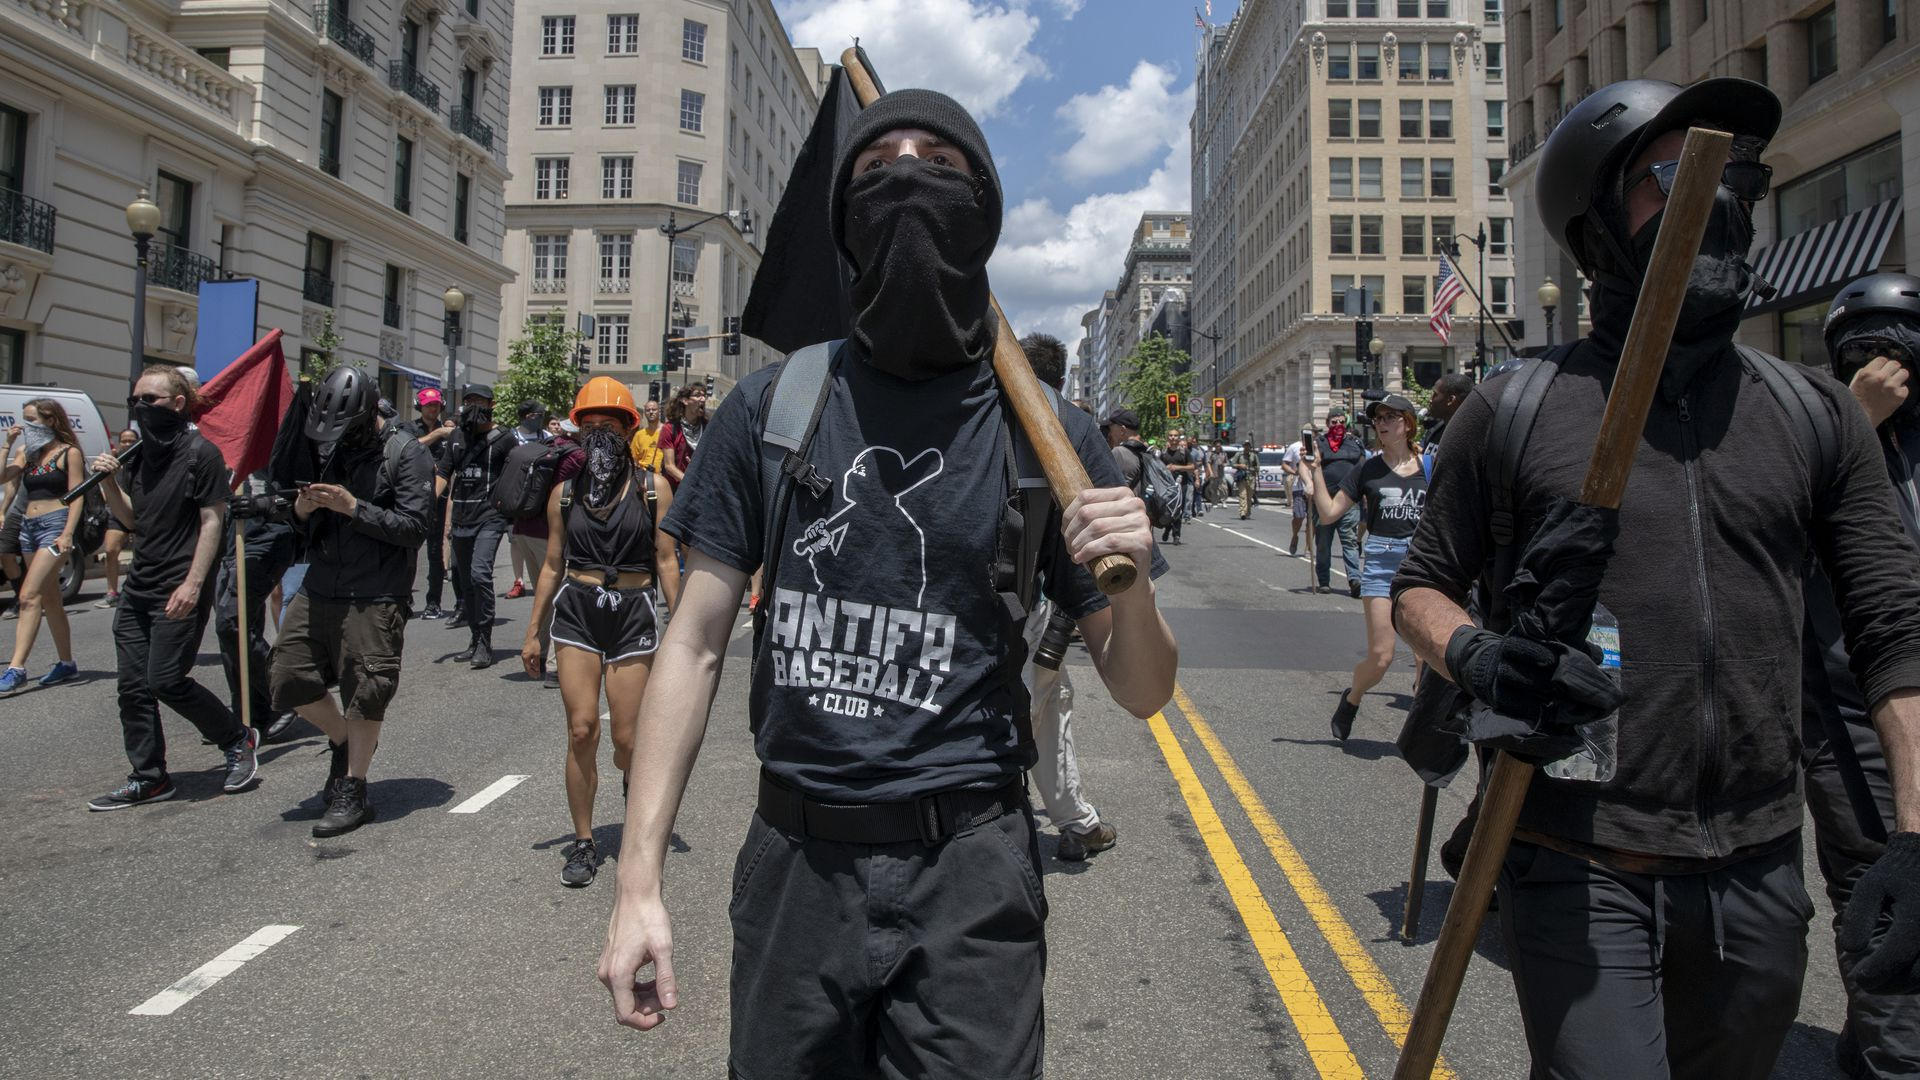 Antifa marching with clubs